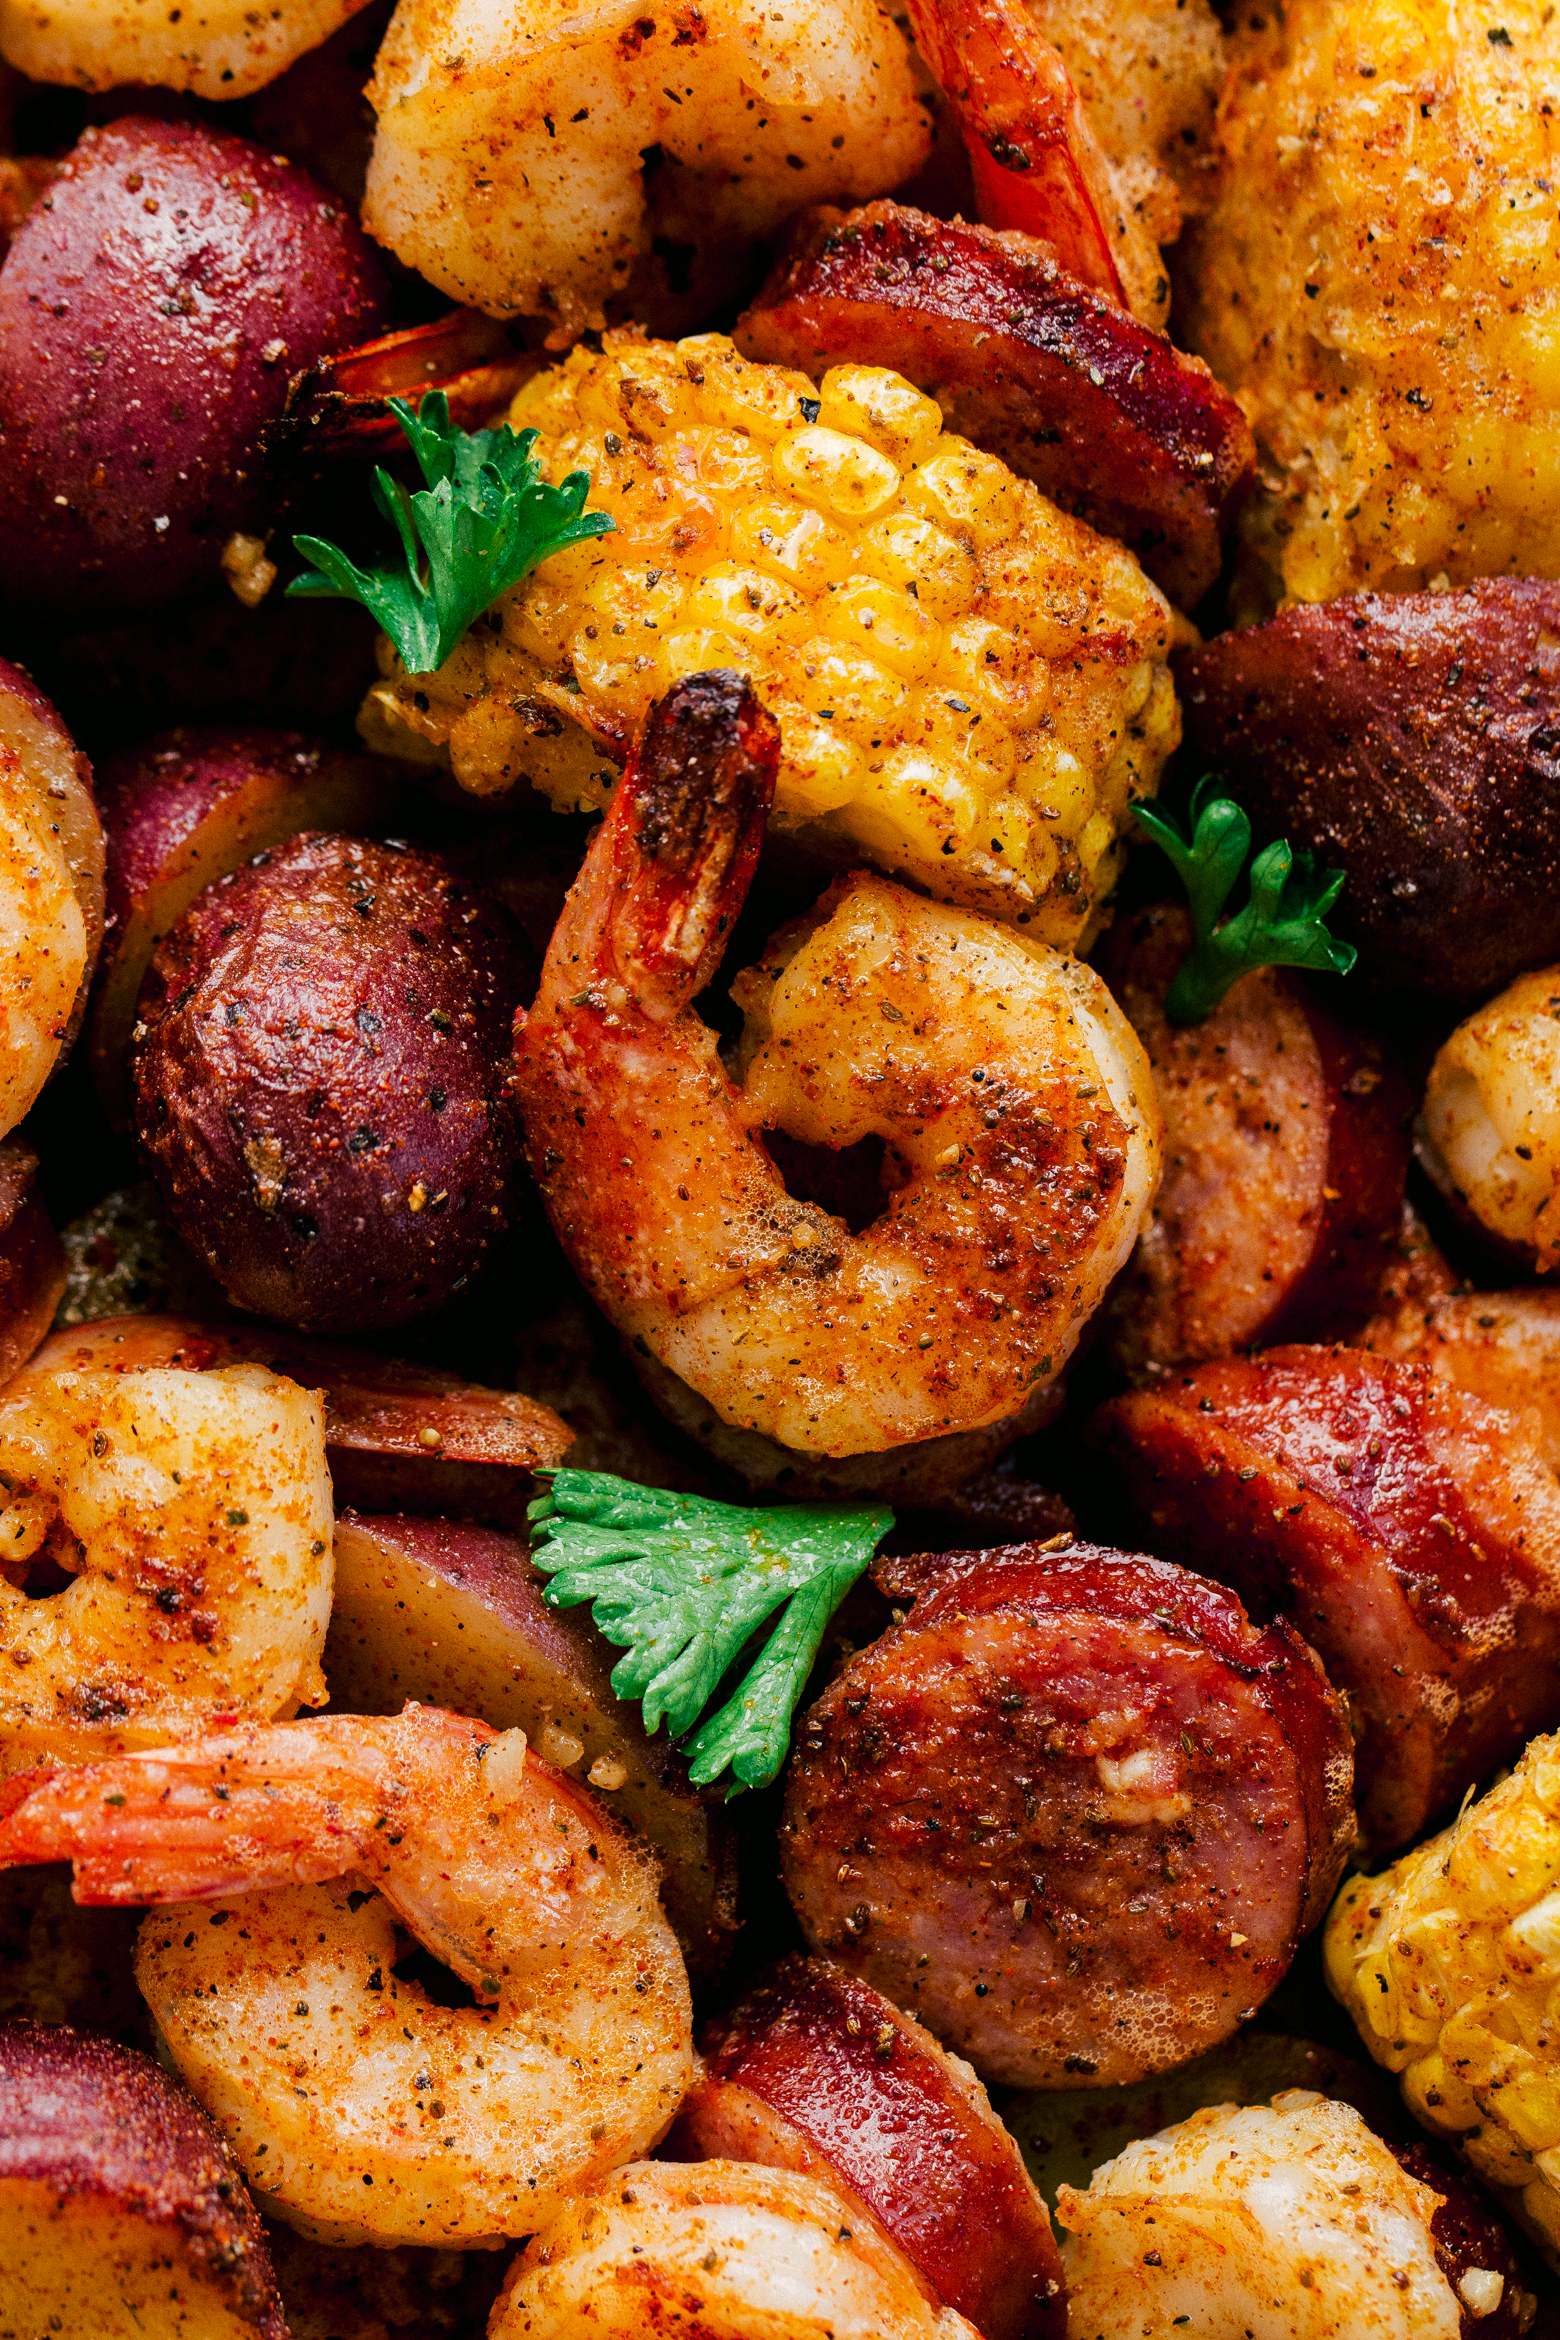 Shrimp boil recipe made on a sheet pan in the oven with corn, shrimp, sausage, and red potatoes, by The Food Cafe.